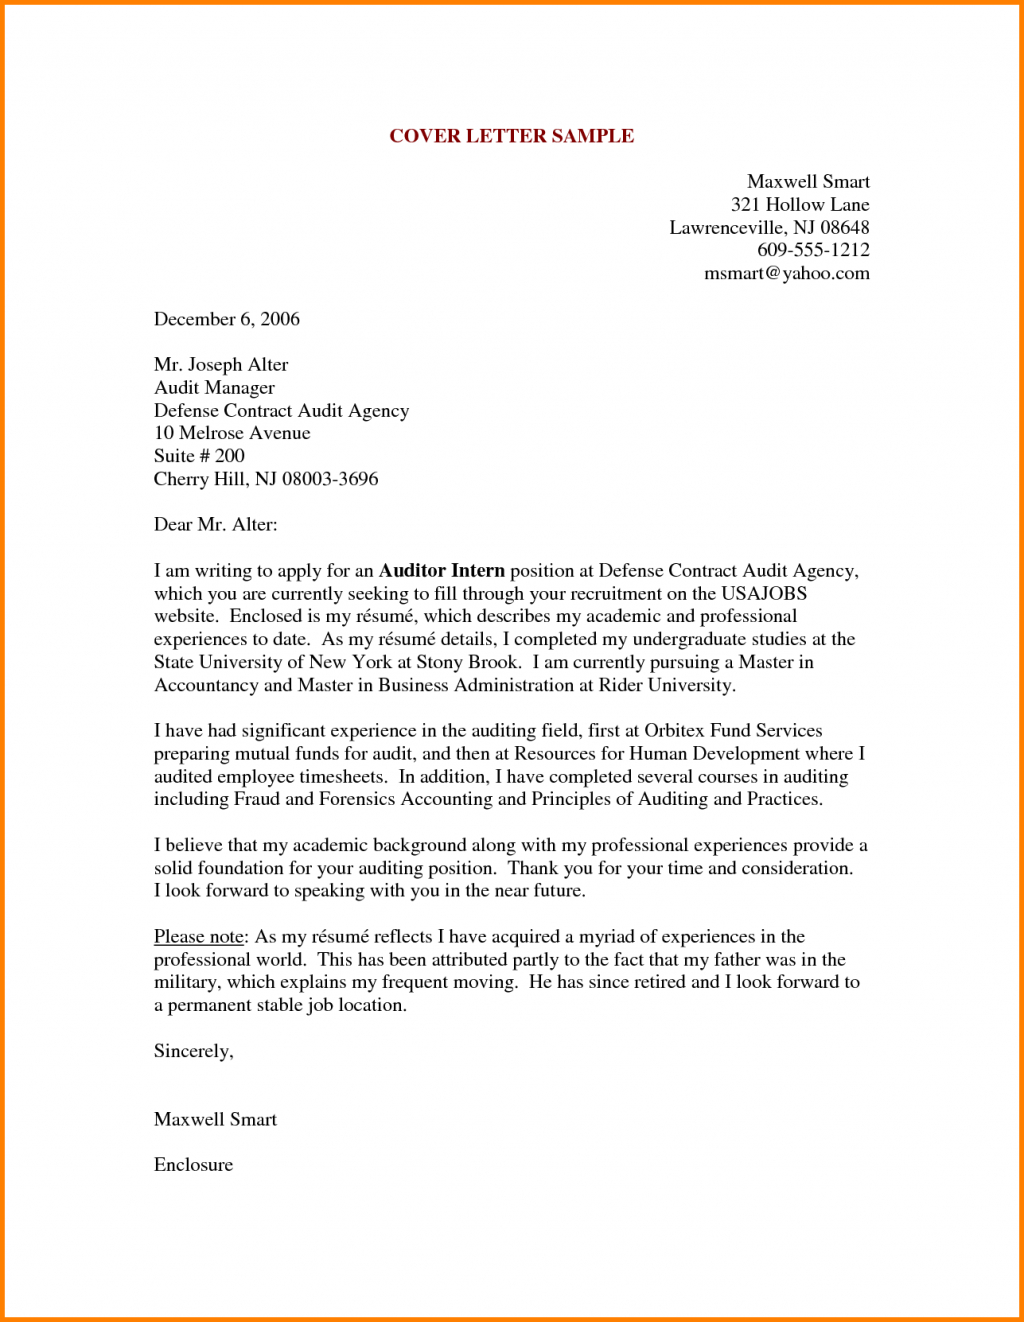 Temp to Perm Offer Letter Template - Business Plan Advertising Agency Contracte with Proposal Letter